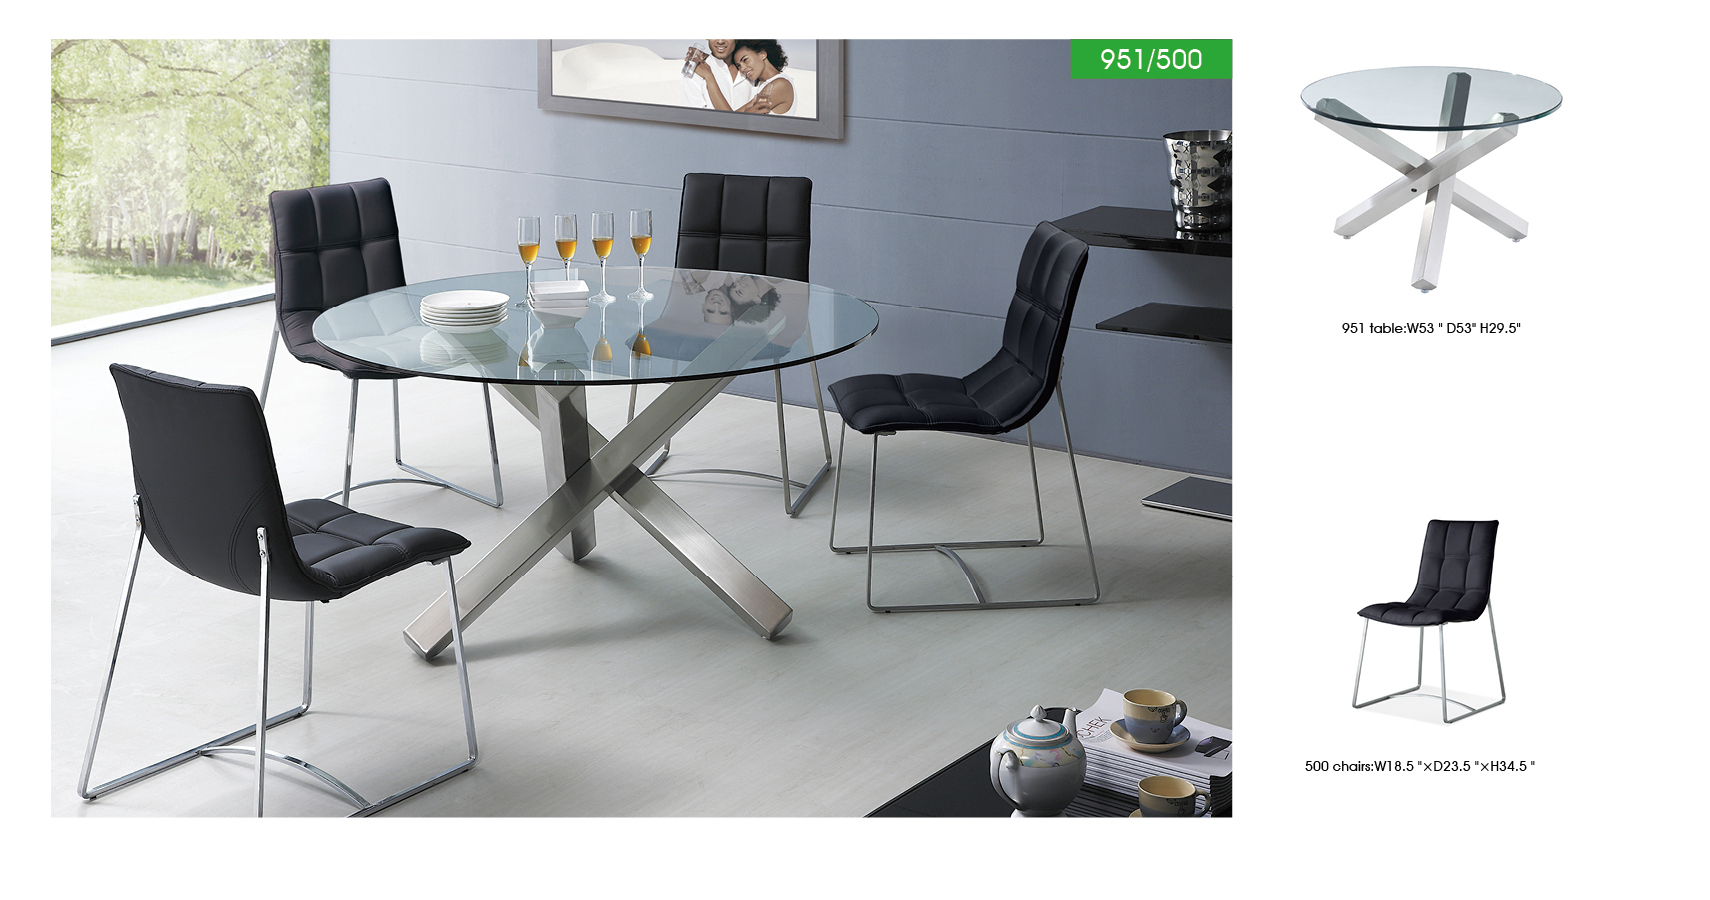 Modern dining room tables and chairs - Stunning Modern Dining Room Tables Photos Travellaco Travellaco